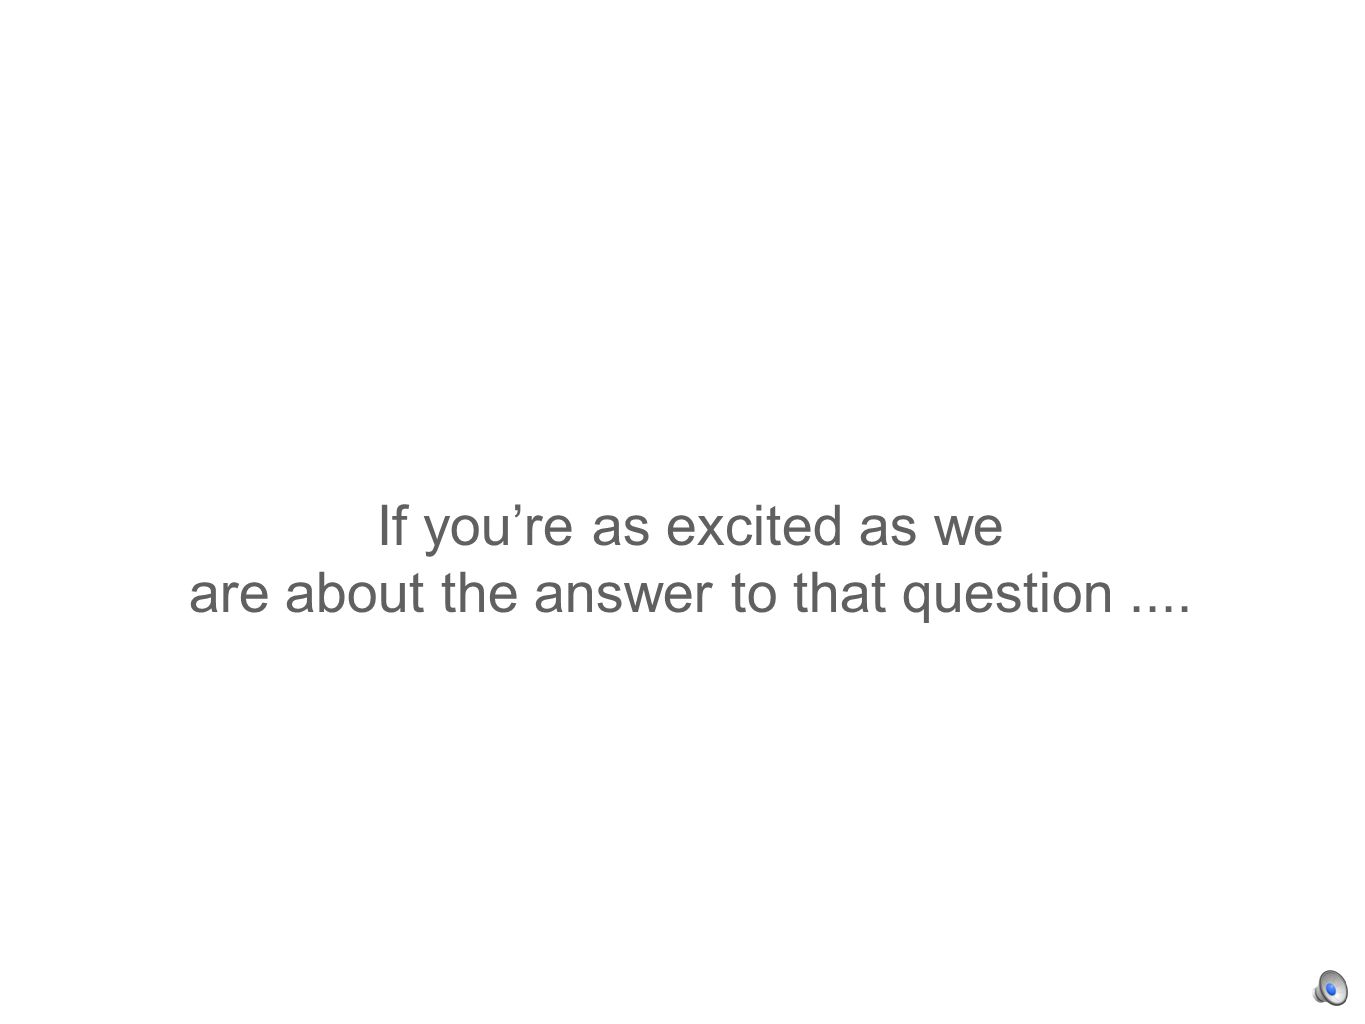 If youre as excited as we are about the answer to that question....